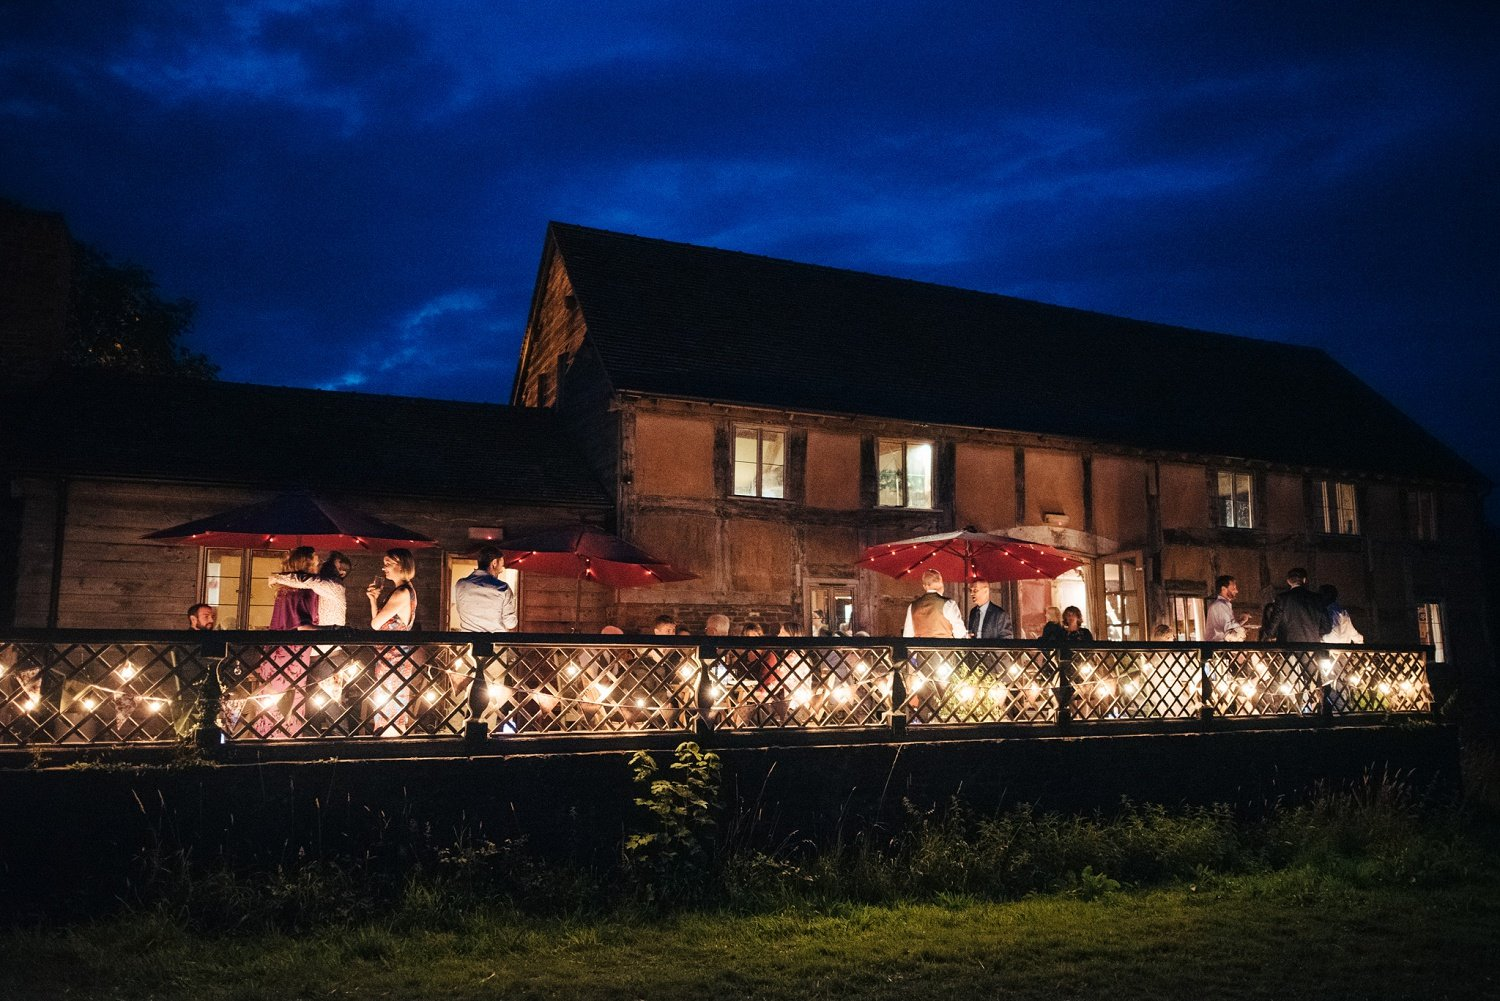 Cider Barn, Herefordshire, by night. End of a wedding